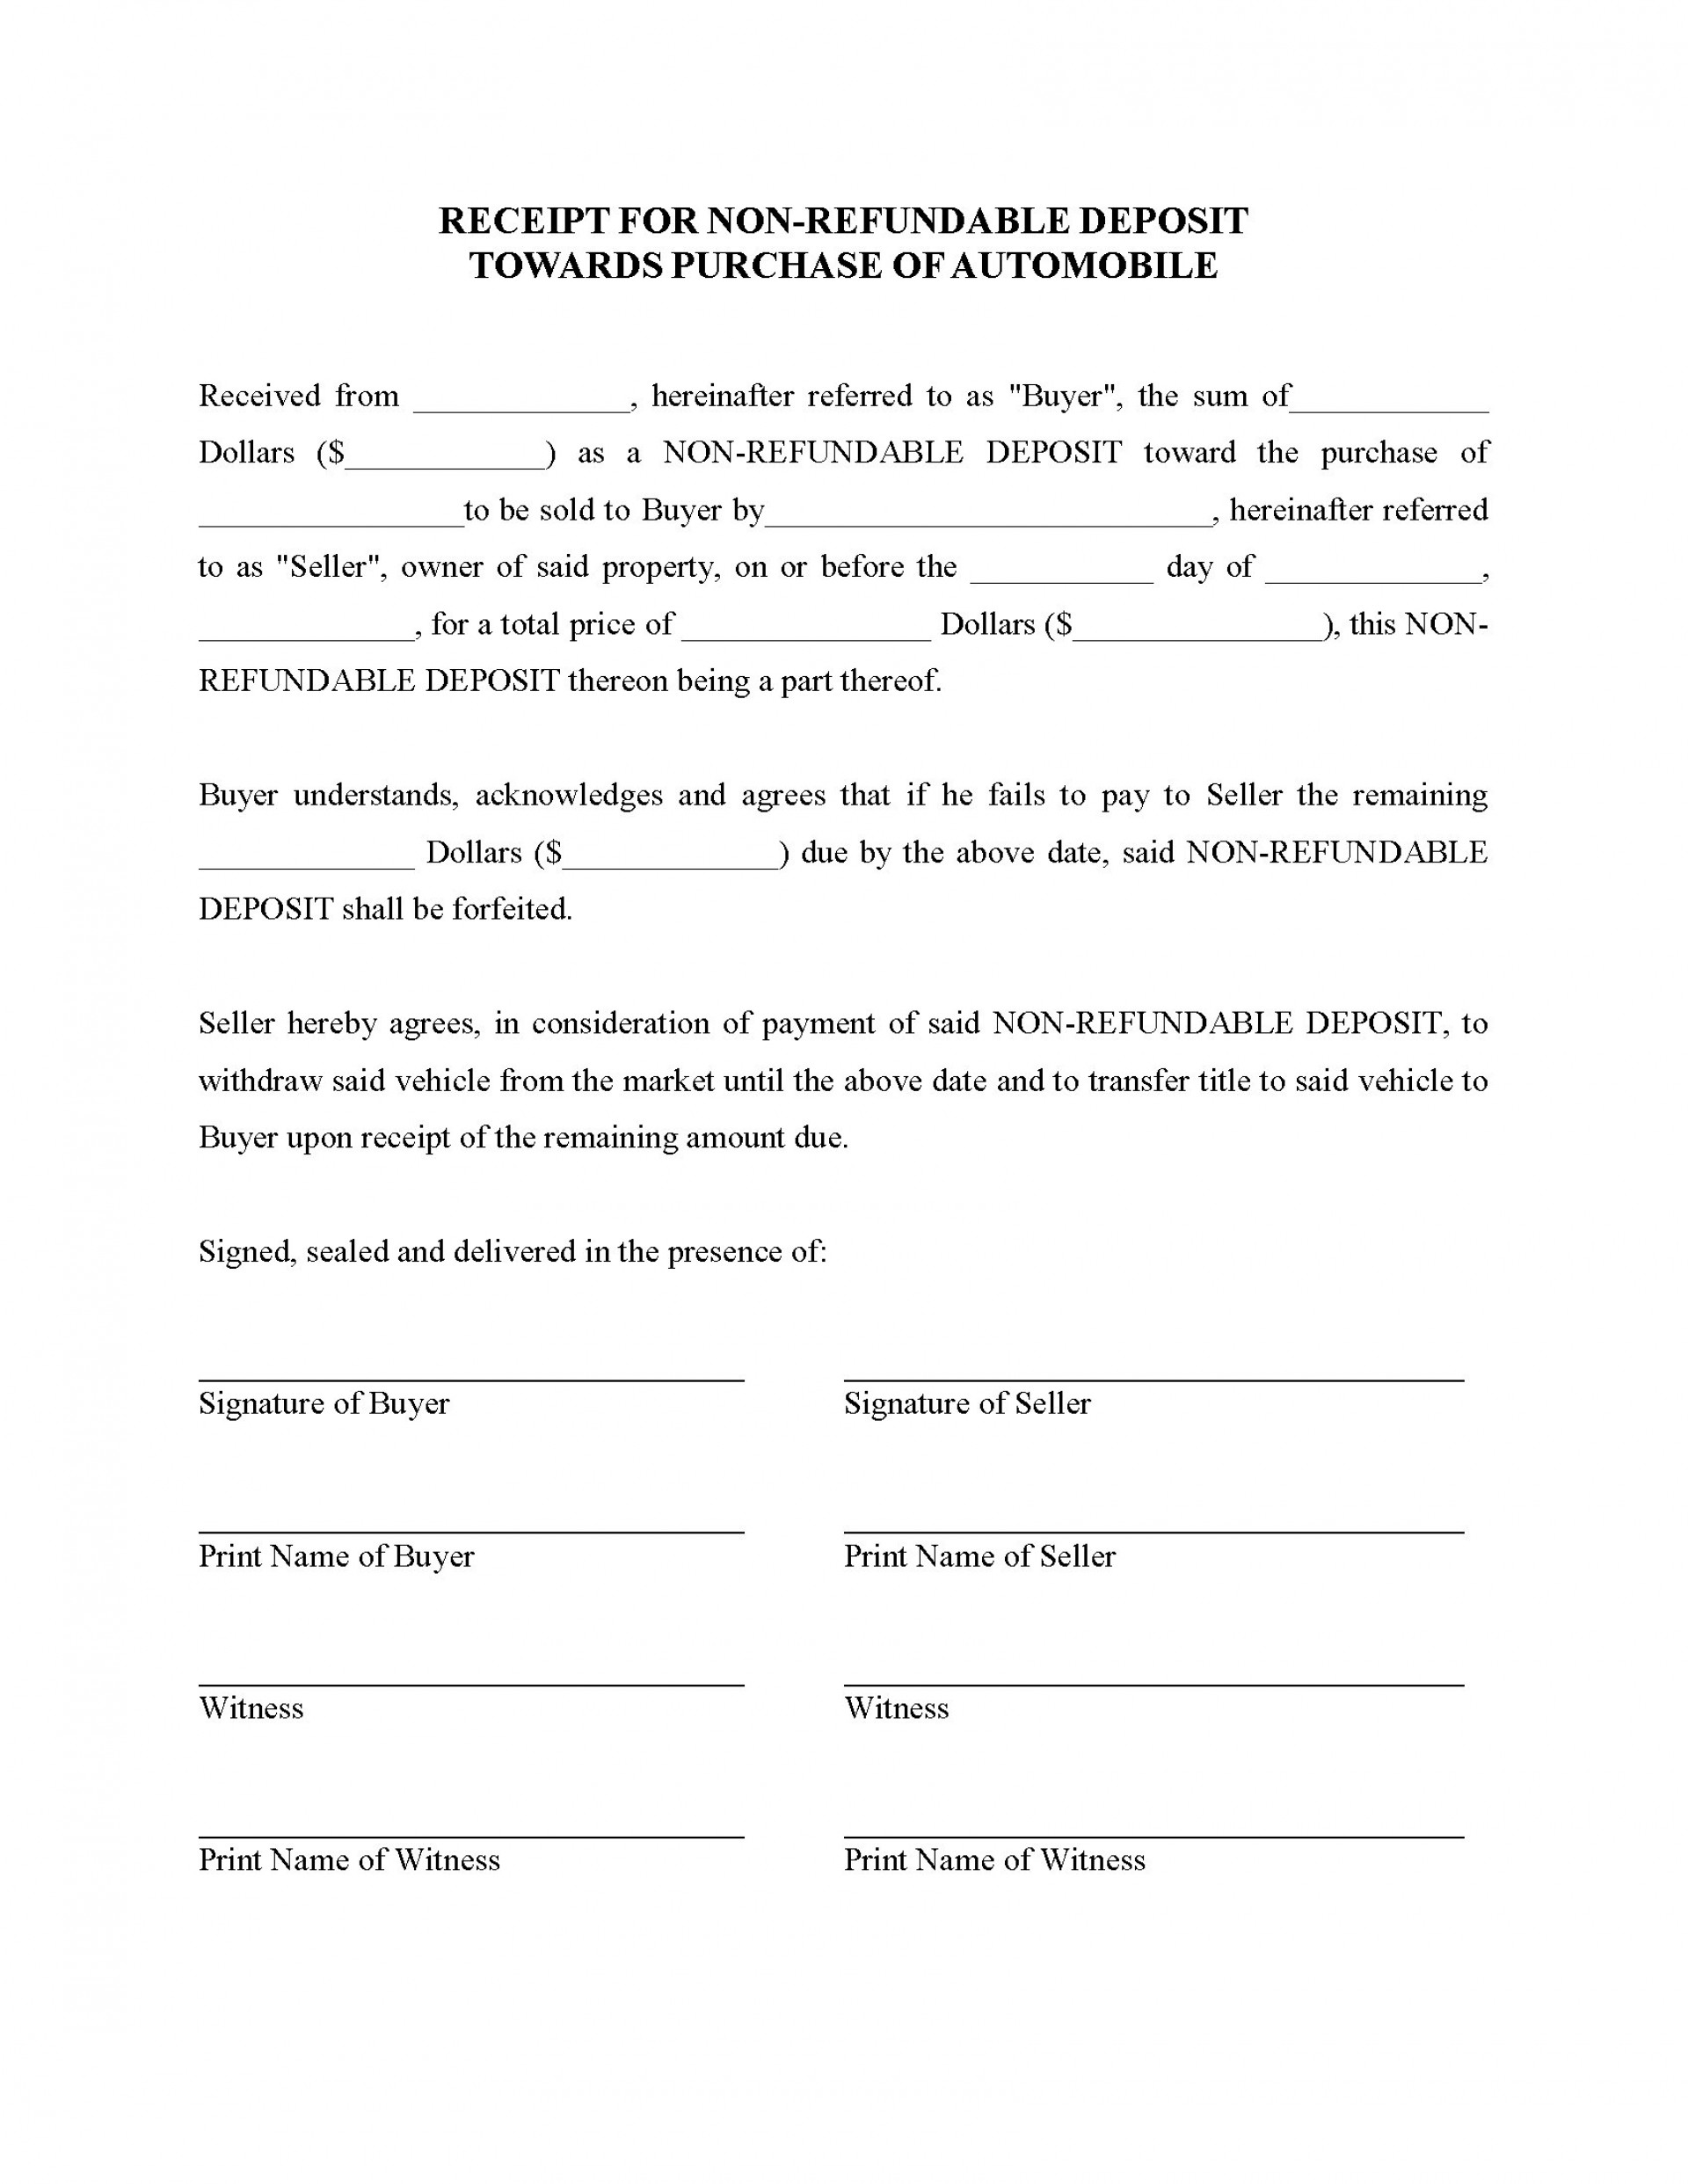 005 Awful Sale Agreement Template Australia Inspiration  Busines Horse Car Contract1920